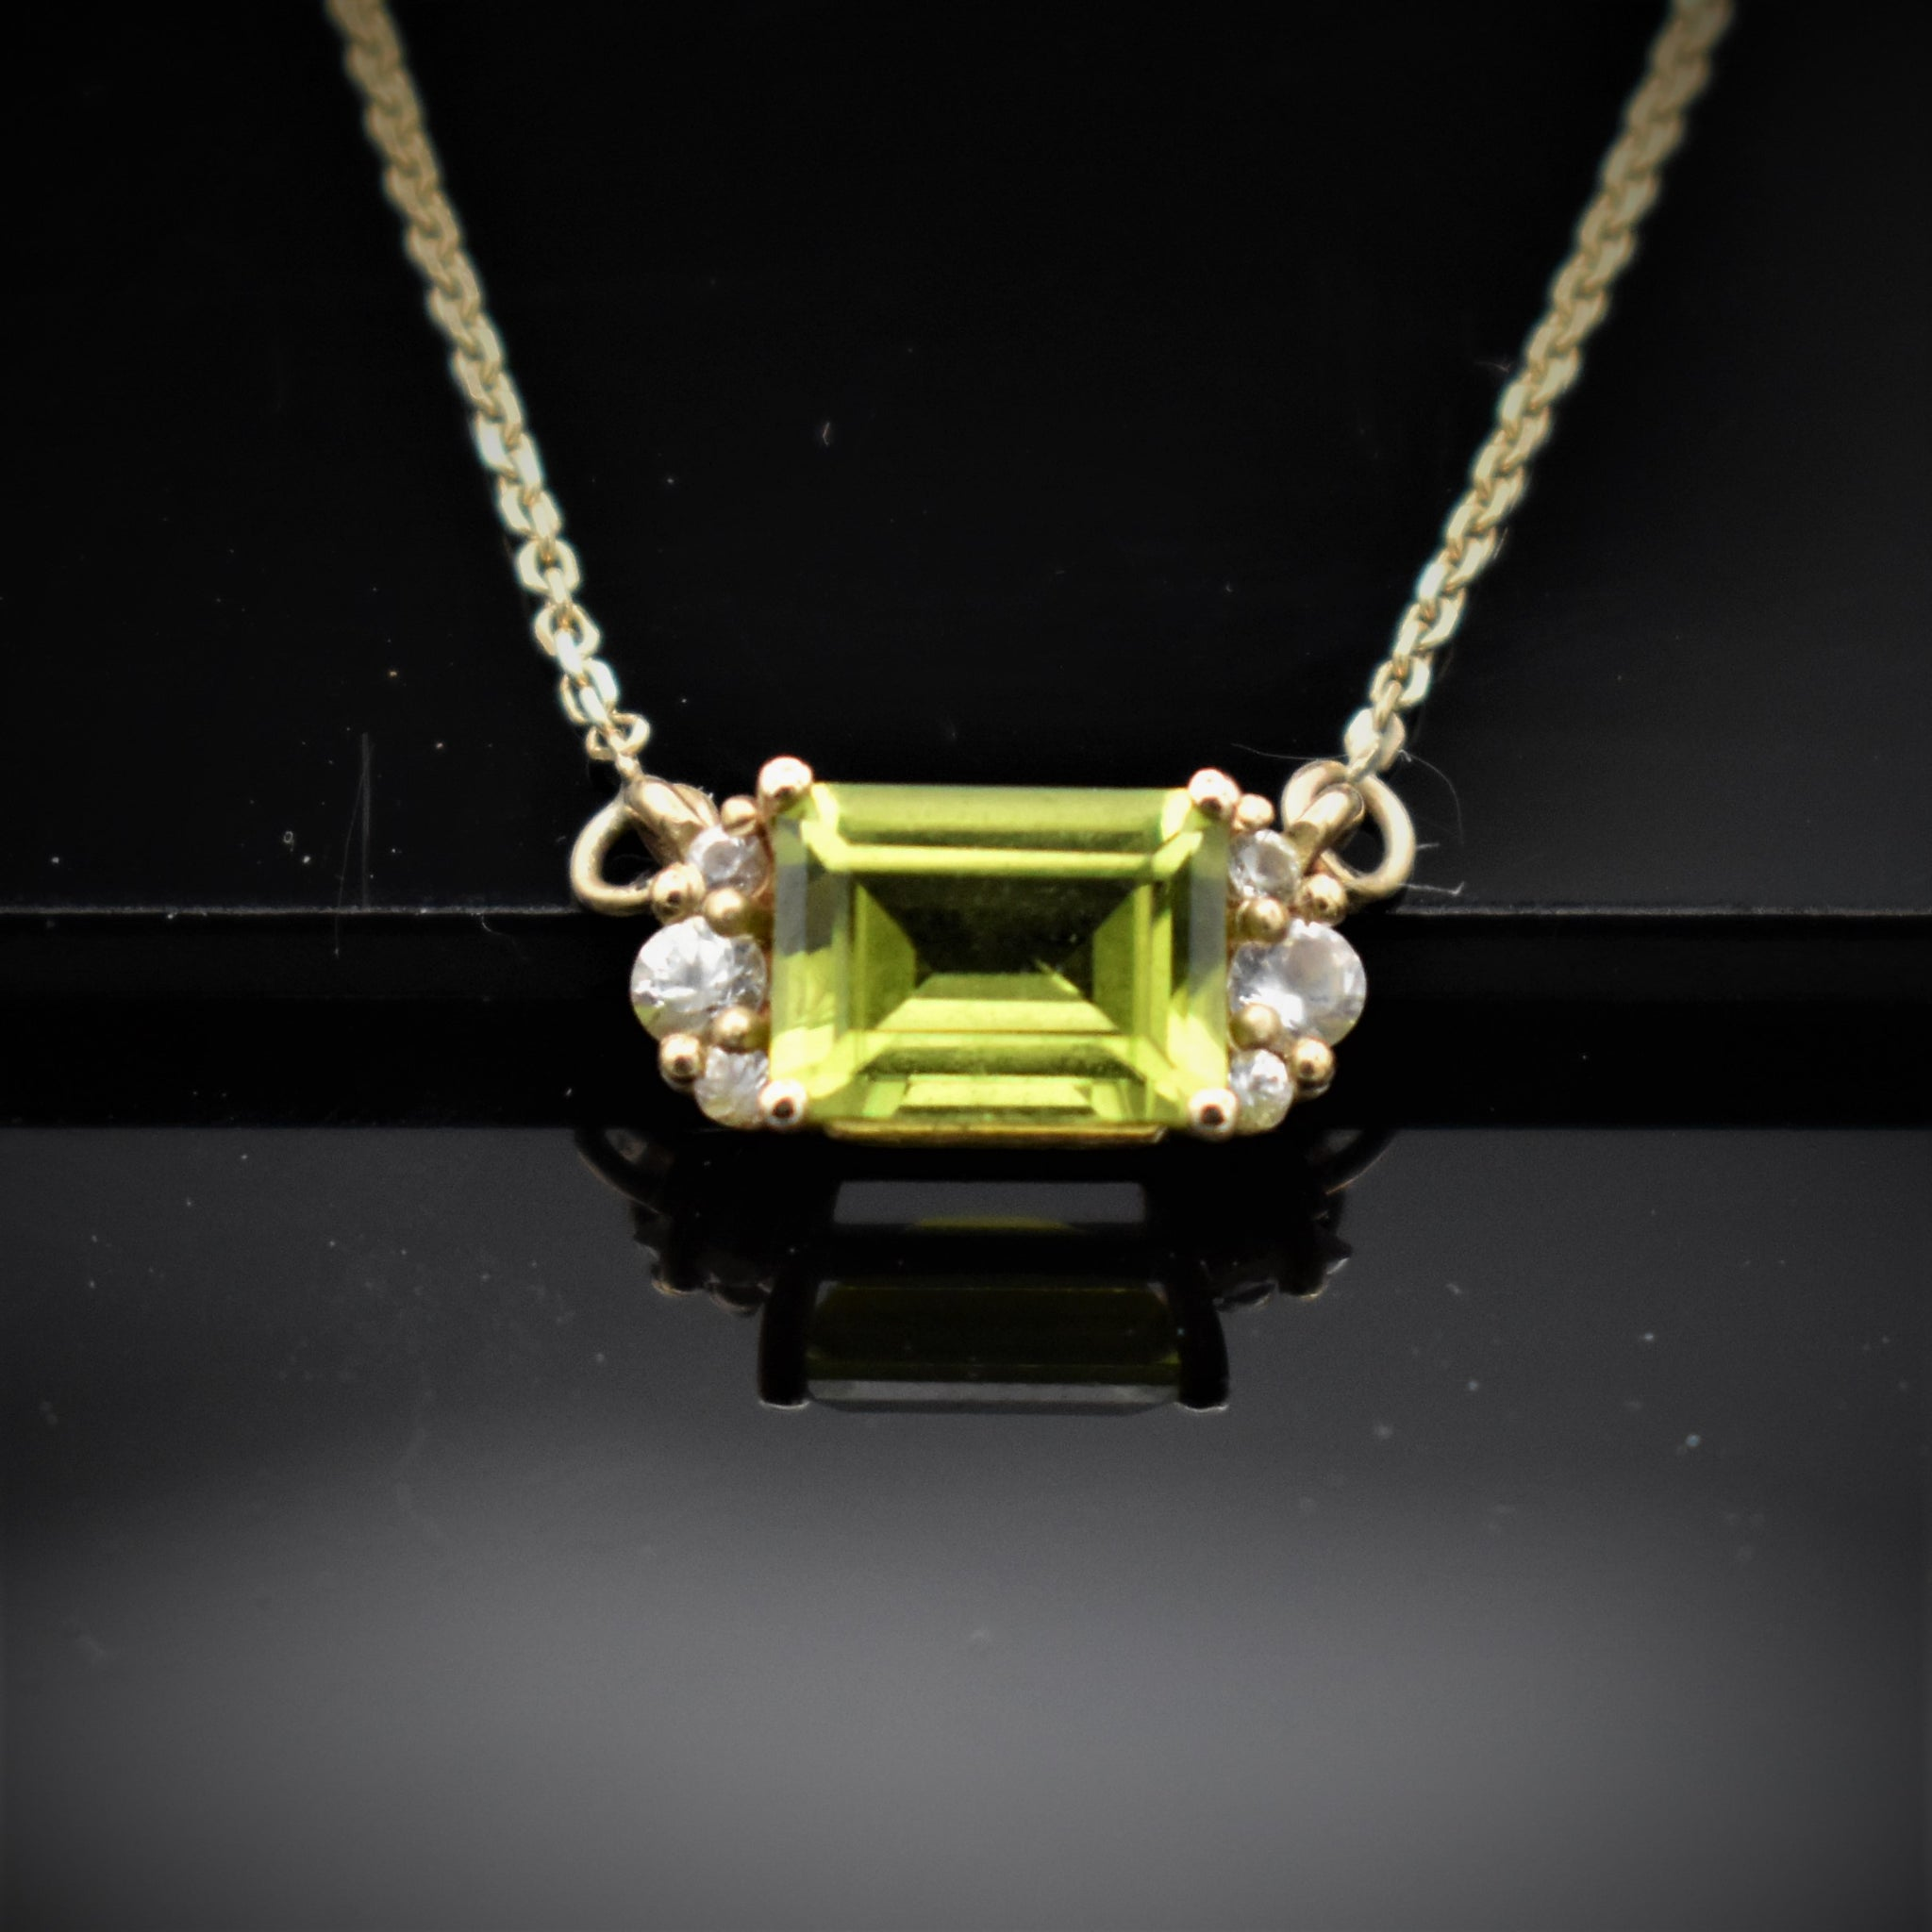 Emerald cut necklace in peridot